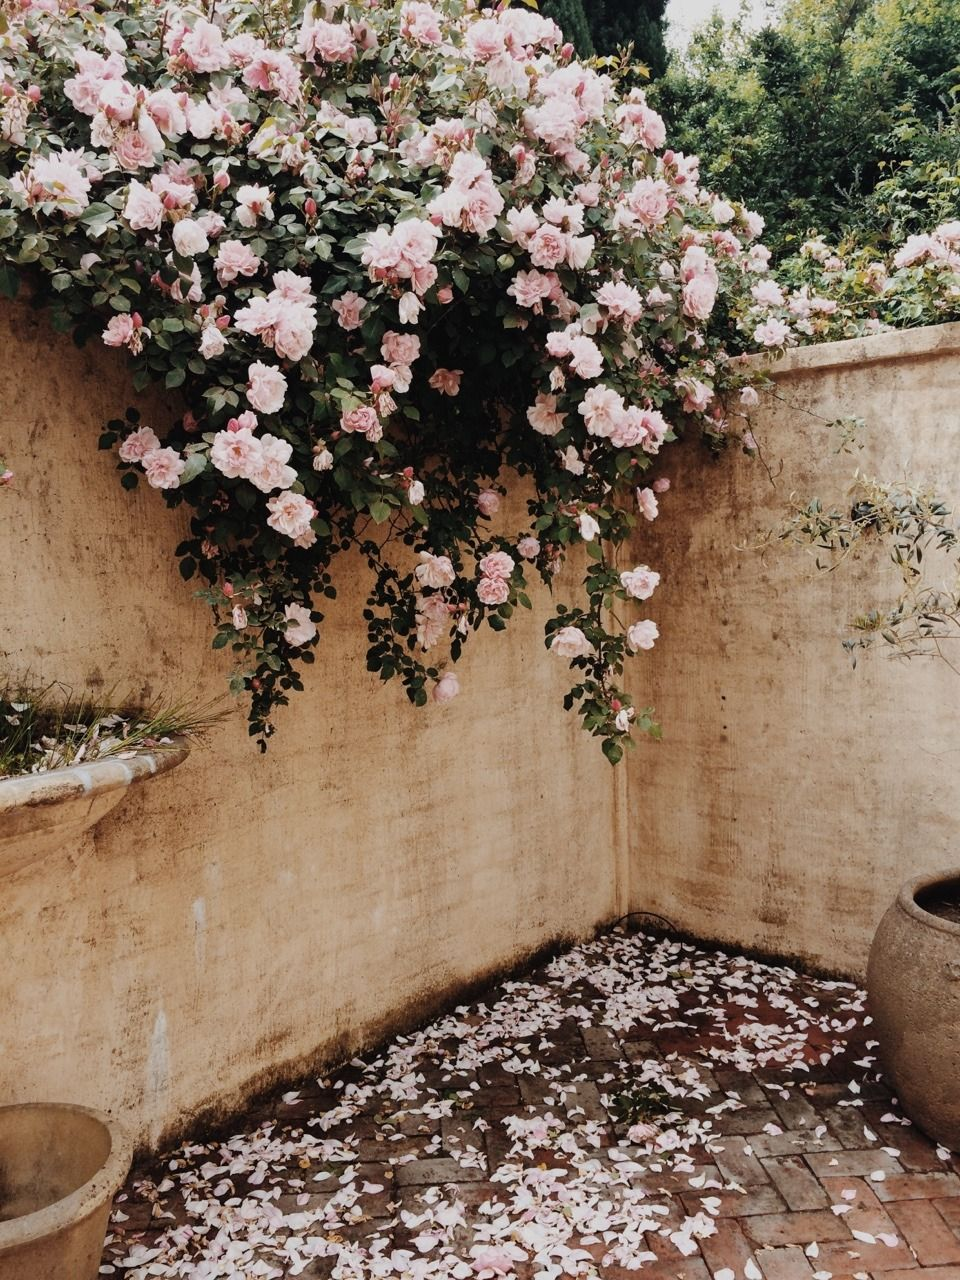 Pin by inna karenina on the south | Pinterest | Flowers, Gardens and ...